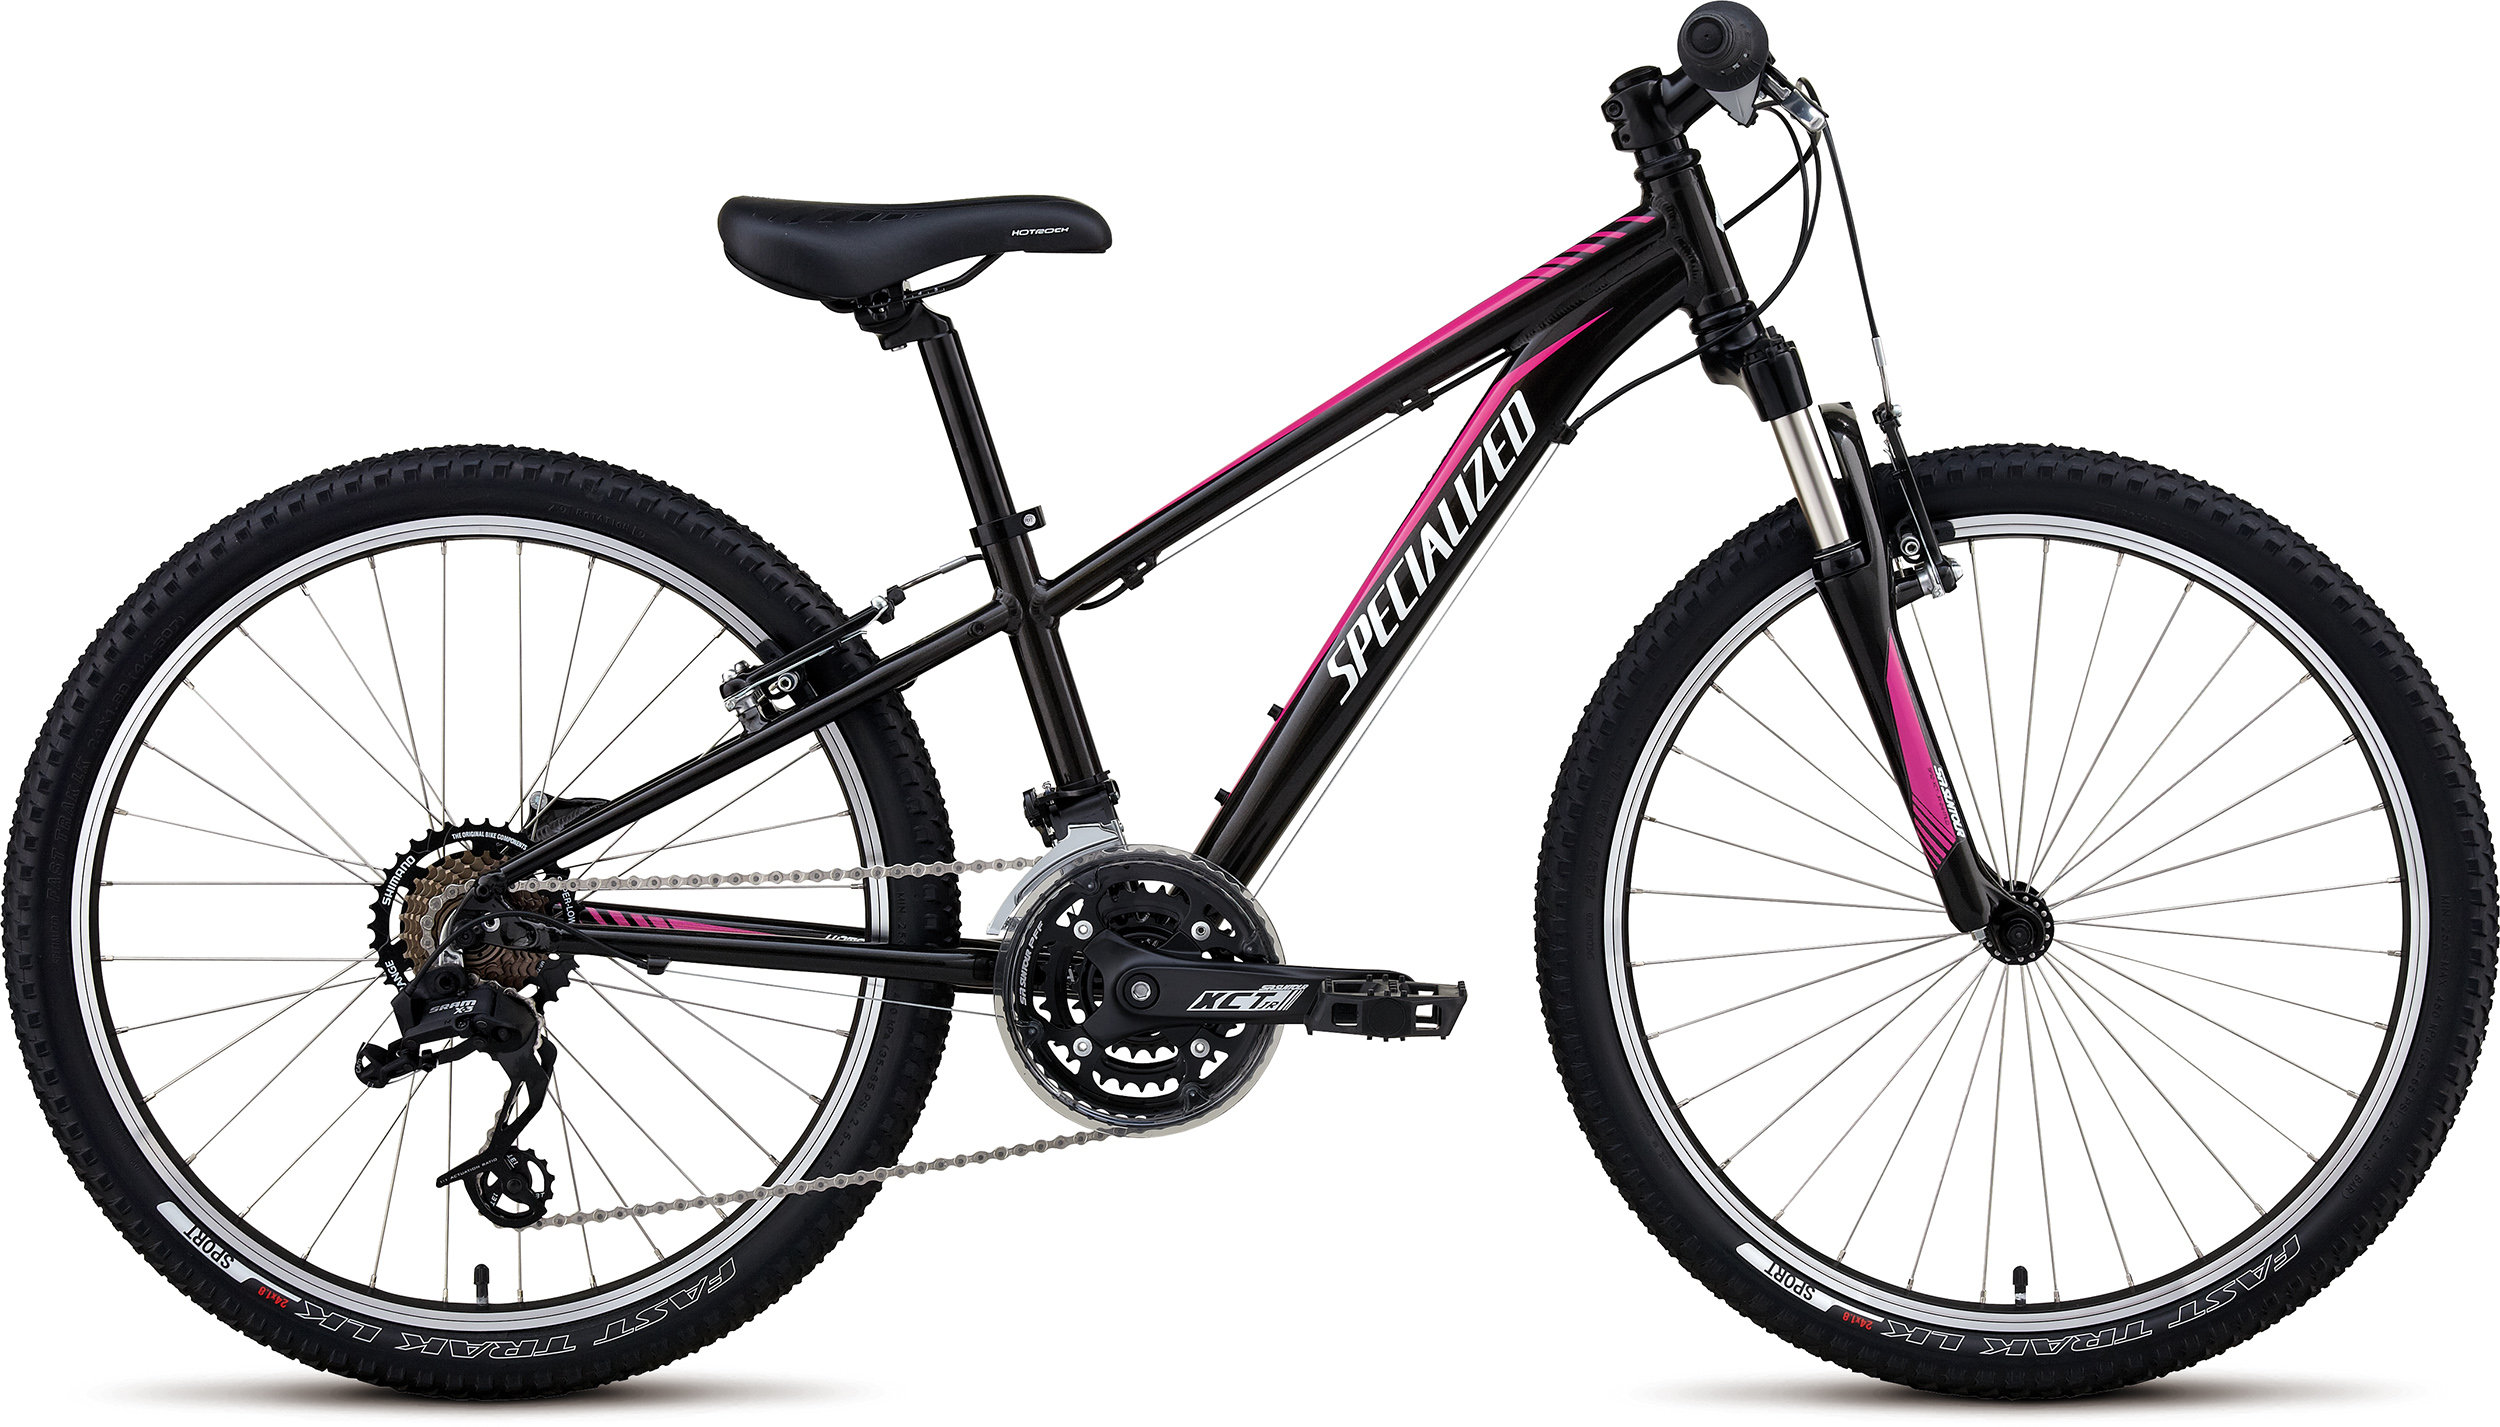 SPECIALIZED HTRK 24 XC GIRL BLK/PNK/WHT 11 - Bikedreams & Dustbikes